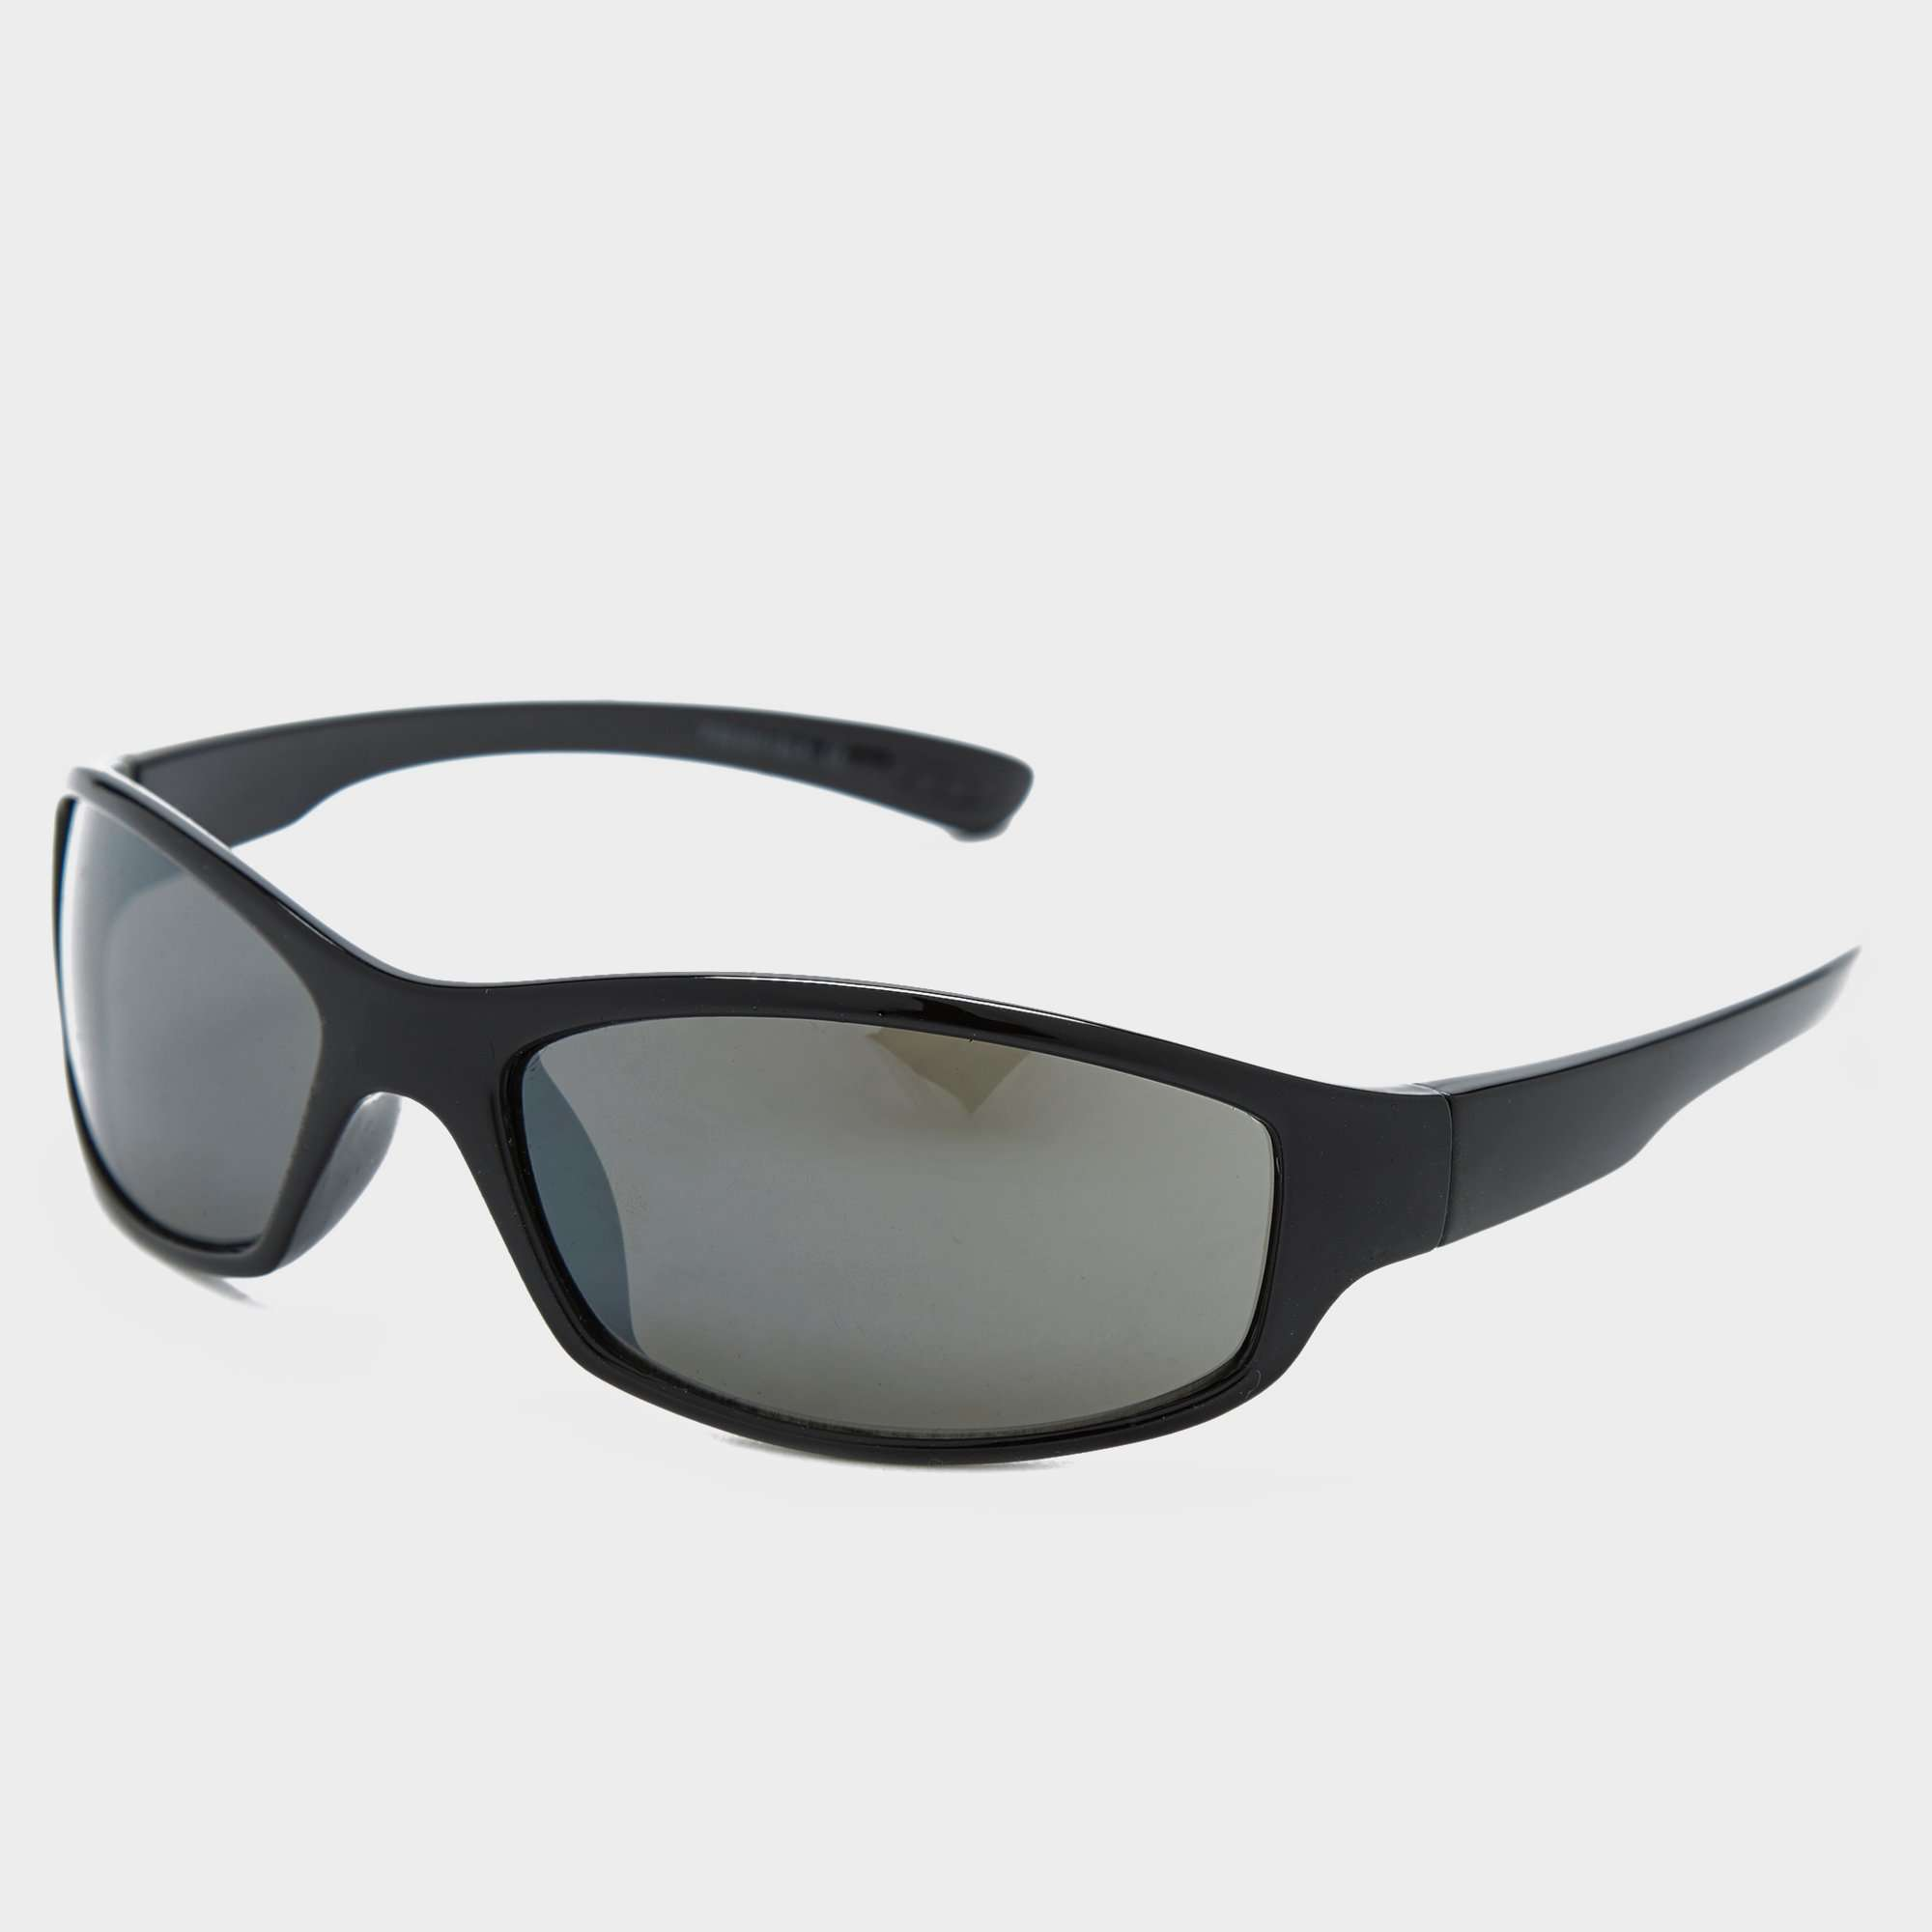 PETER STORM Men's Sport Wrap-Around Sunglasses